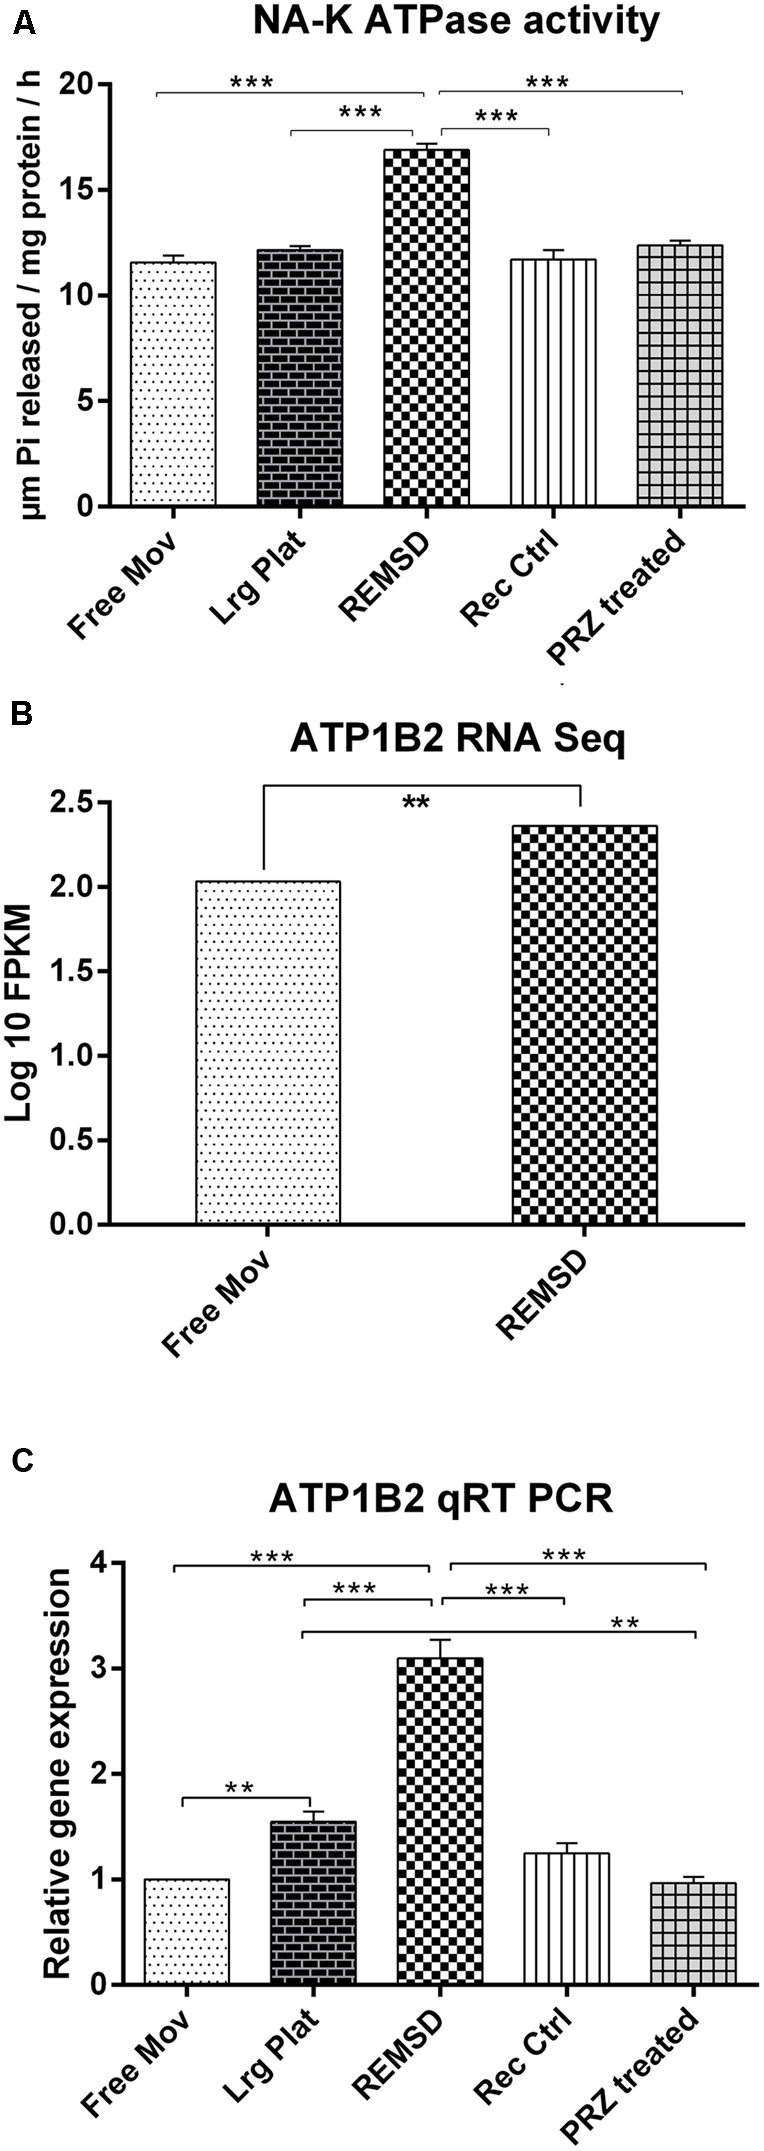 Na–K ATPase activity and expression: (A) Na–K ATPase activity in synaptosomes prepared from rat brains ( n = 4 rats per groups). (B) RNA seq data showing significant up-regulation of ATP1B2 transcripts upon REMSD ( P